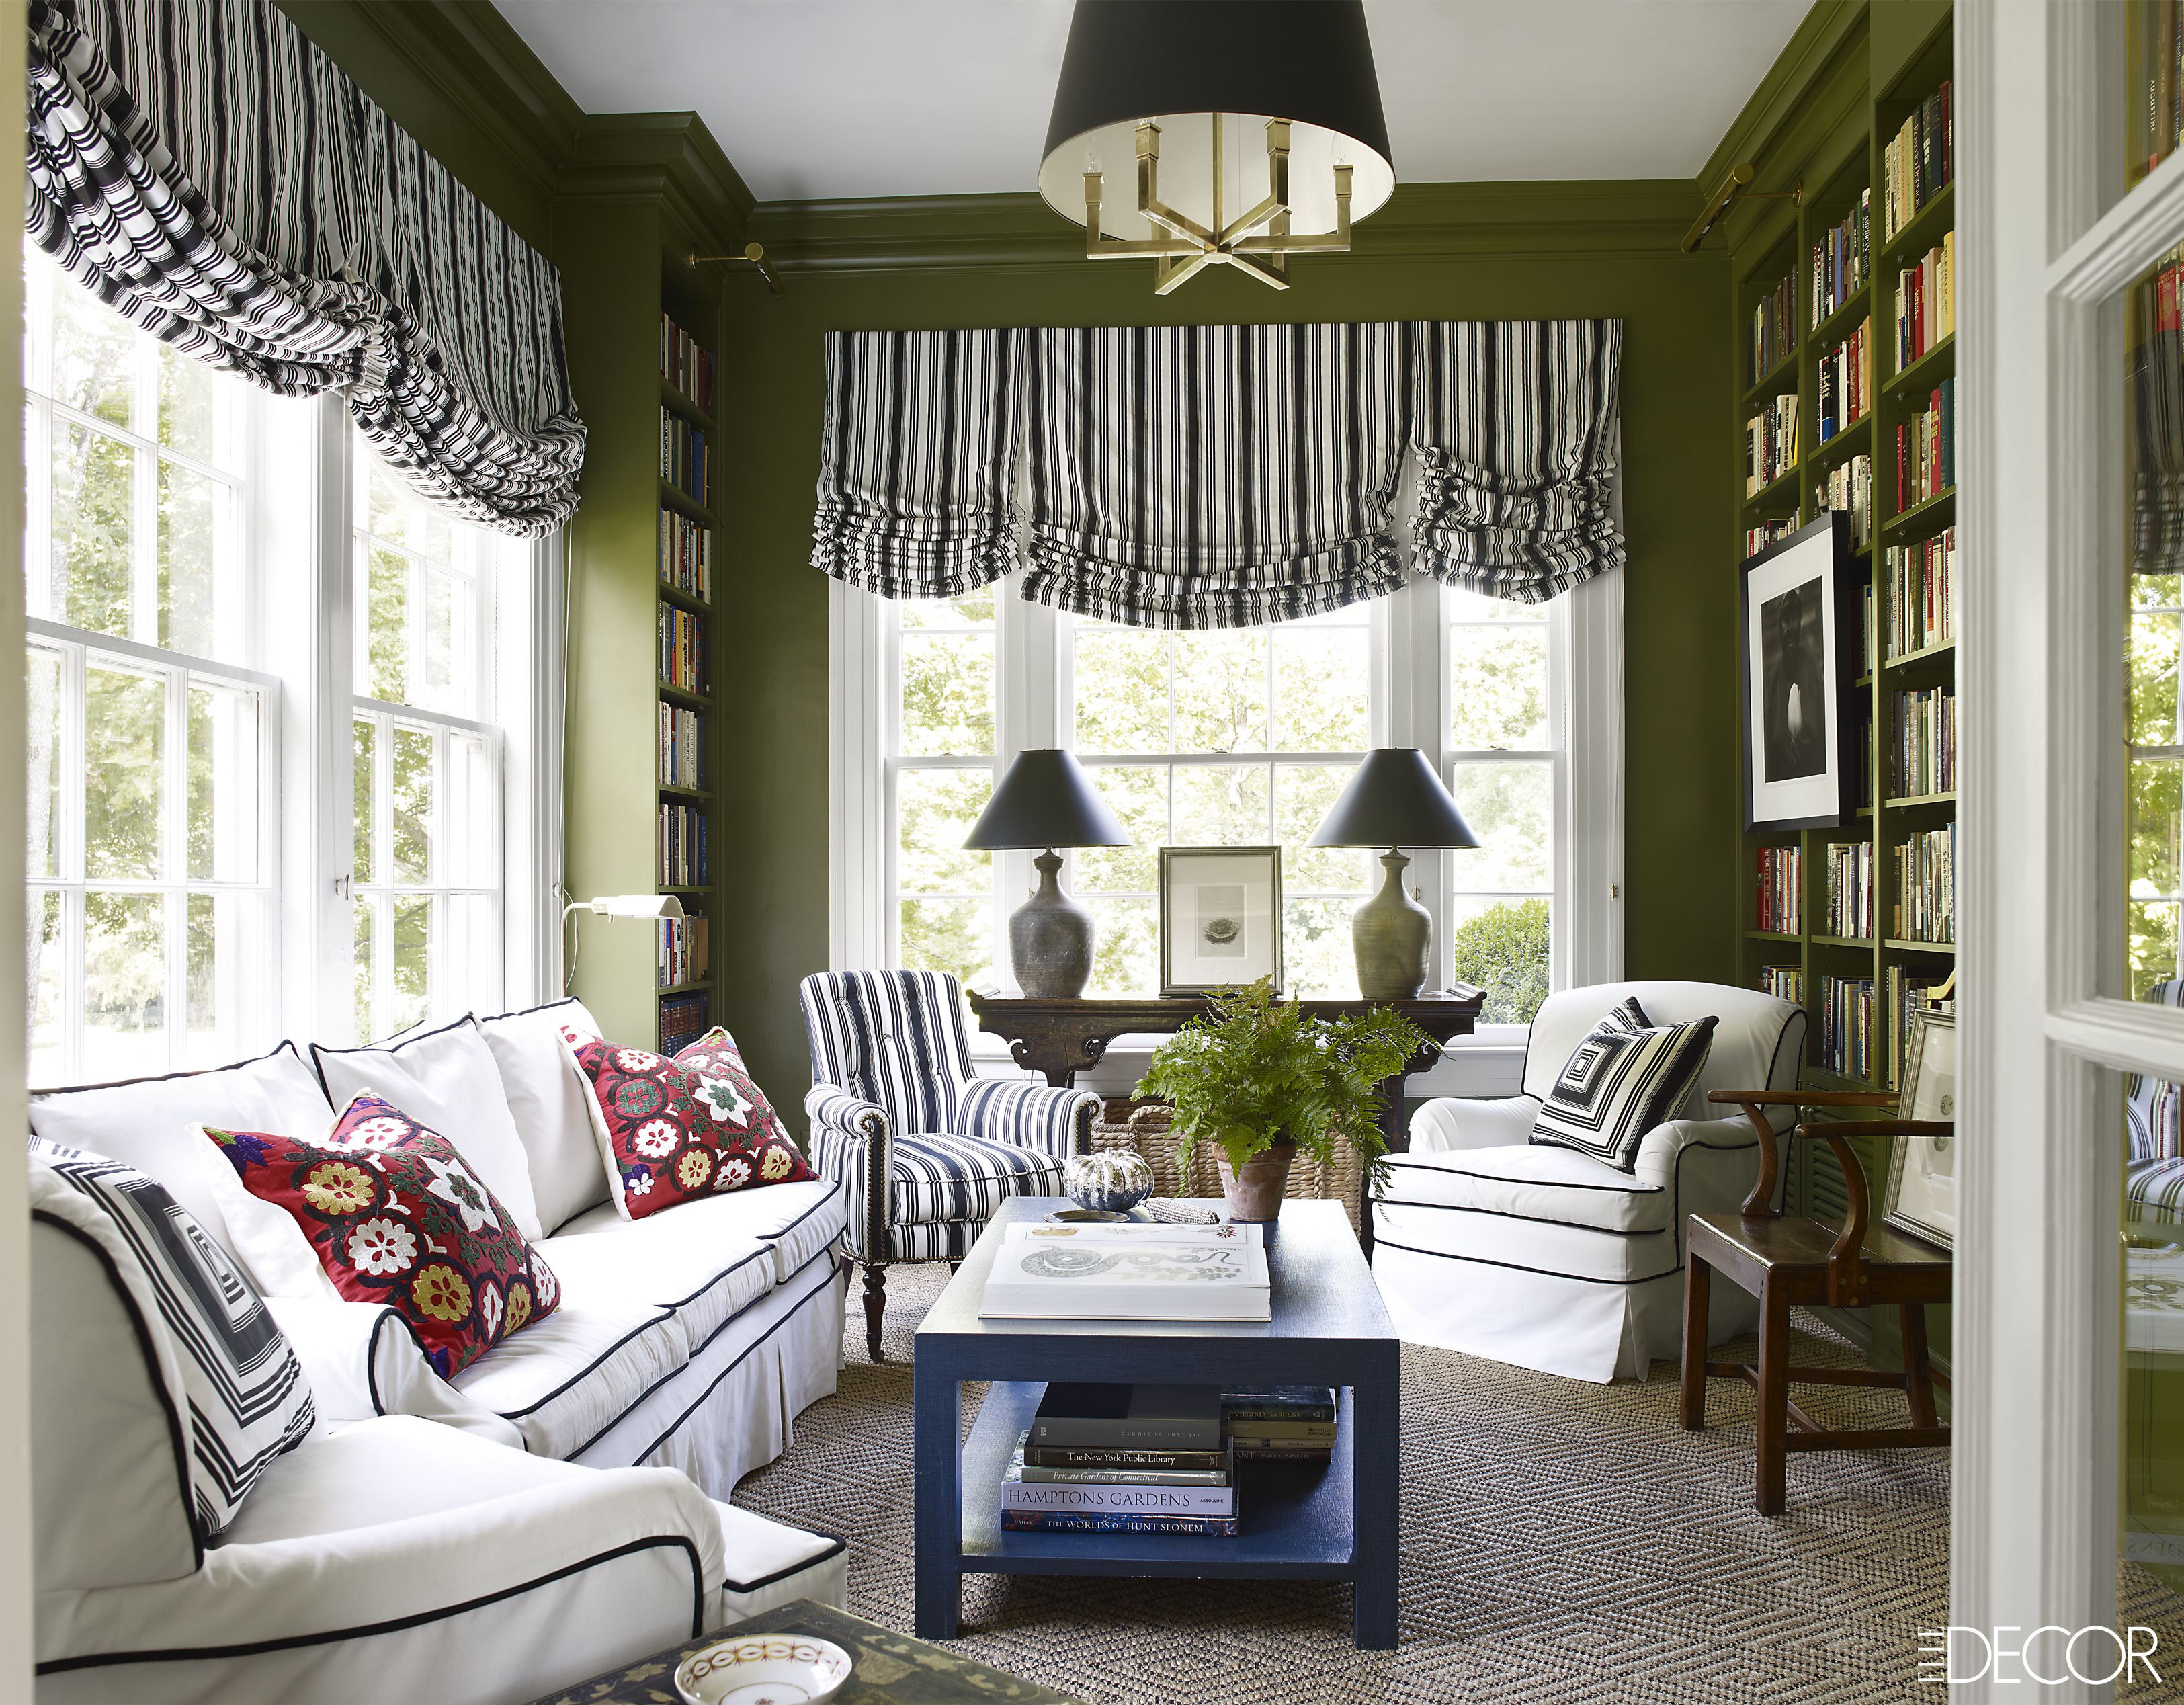 Hardwood Floor Trends 2019 Of 30 Impossibly Chic Olive Green Paint Color Decor Ideas for Greenrooms 0814 Brockschmidt